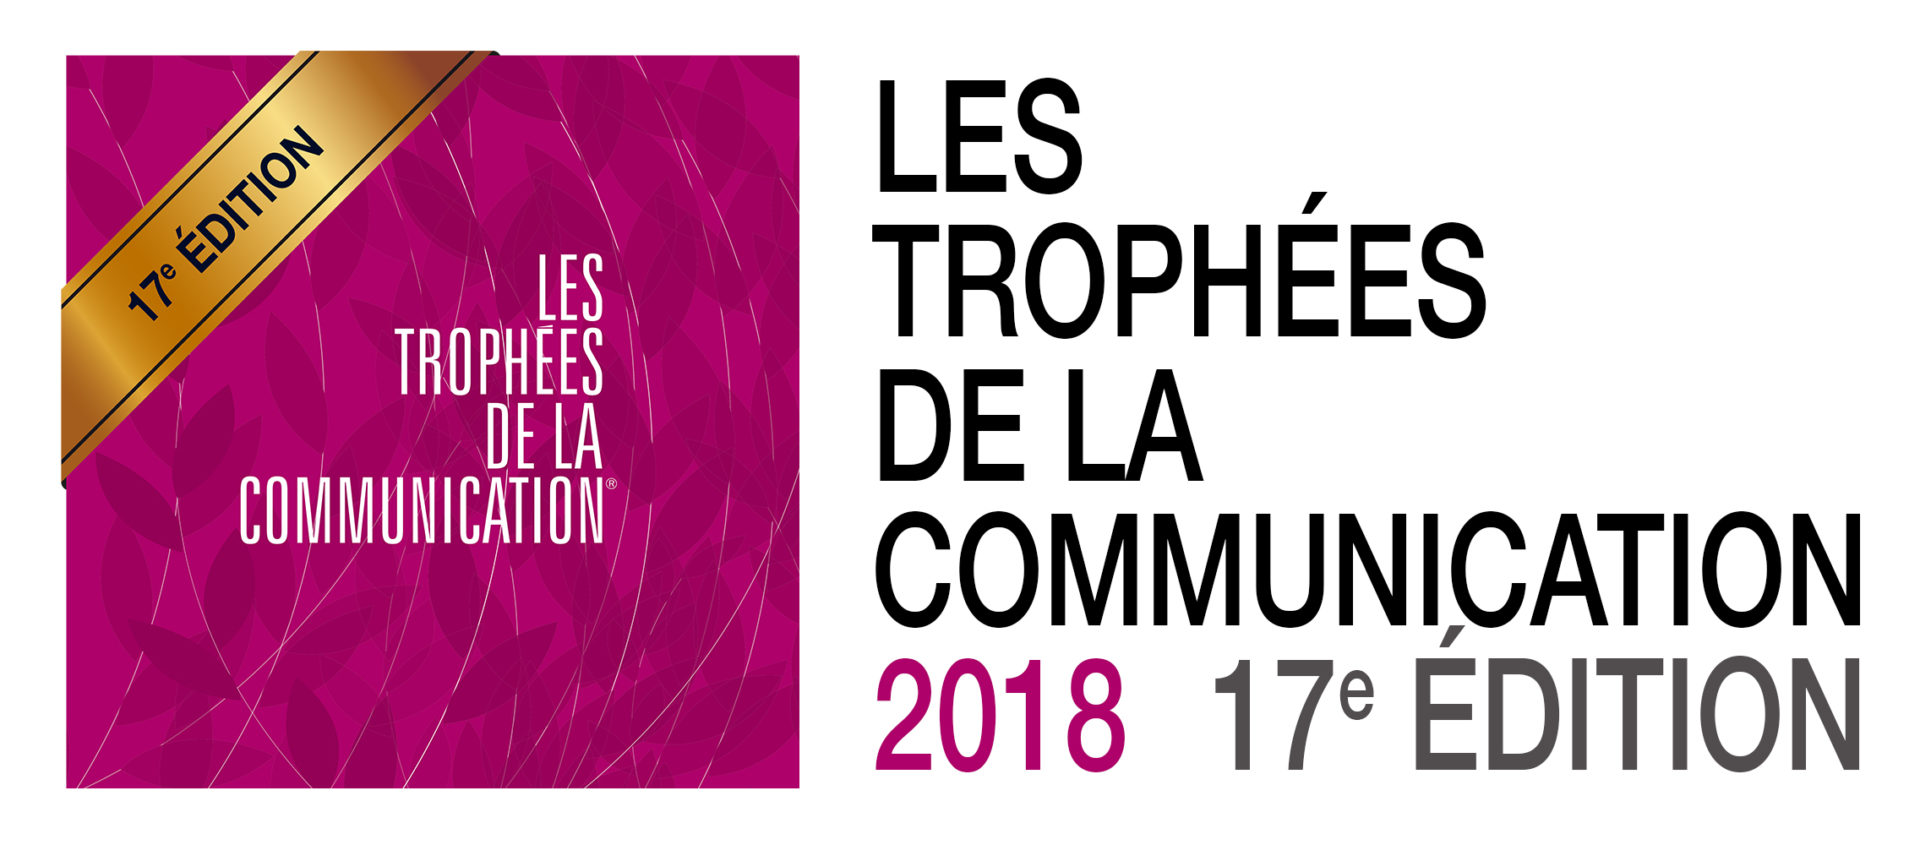 Trophées de la co 2018 - Schenker France